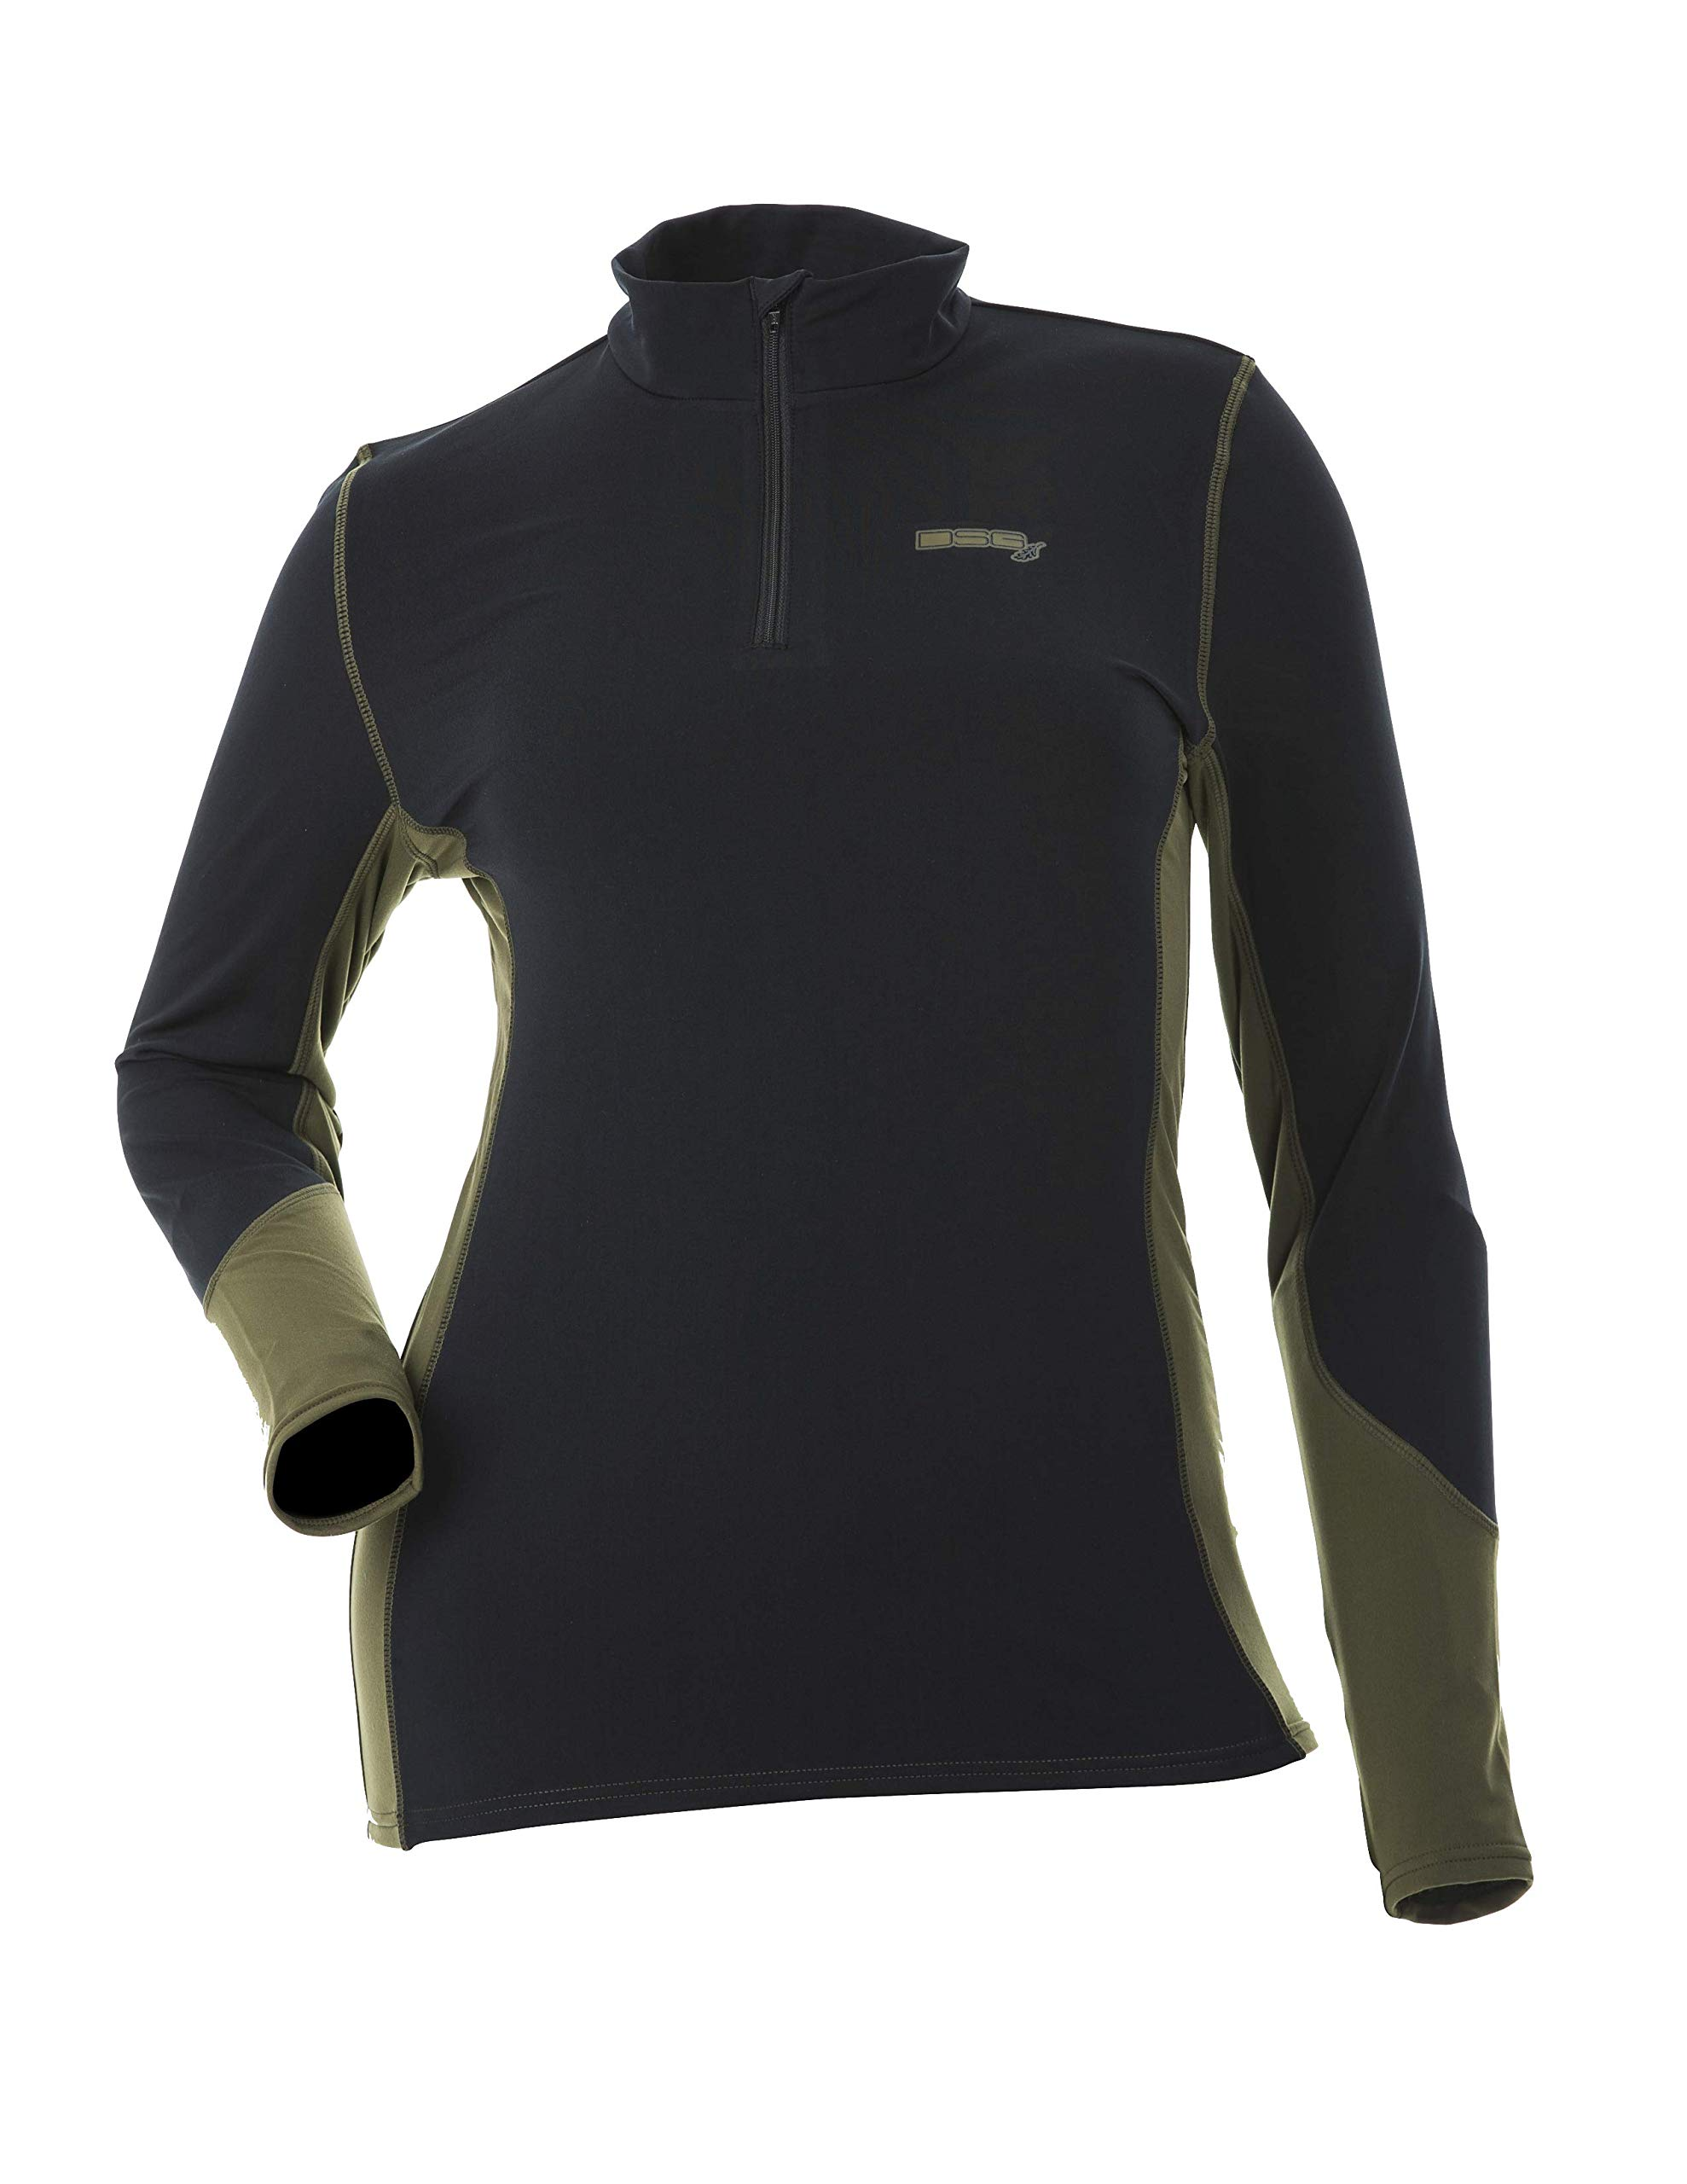 DSG Outerwear Women's Hunting D-Tech Base Layer Shirt - Black/Olive (2XL) by DSG Outerwear